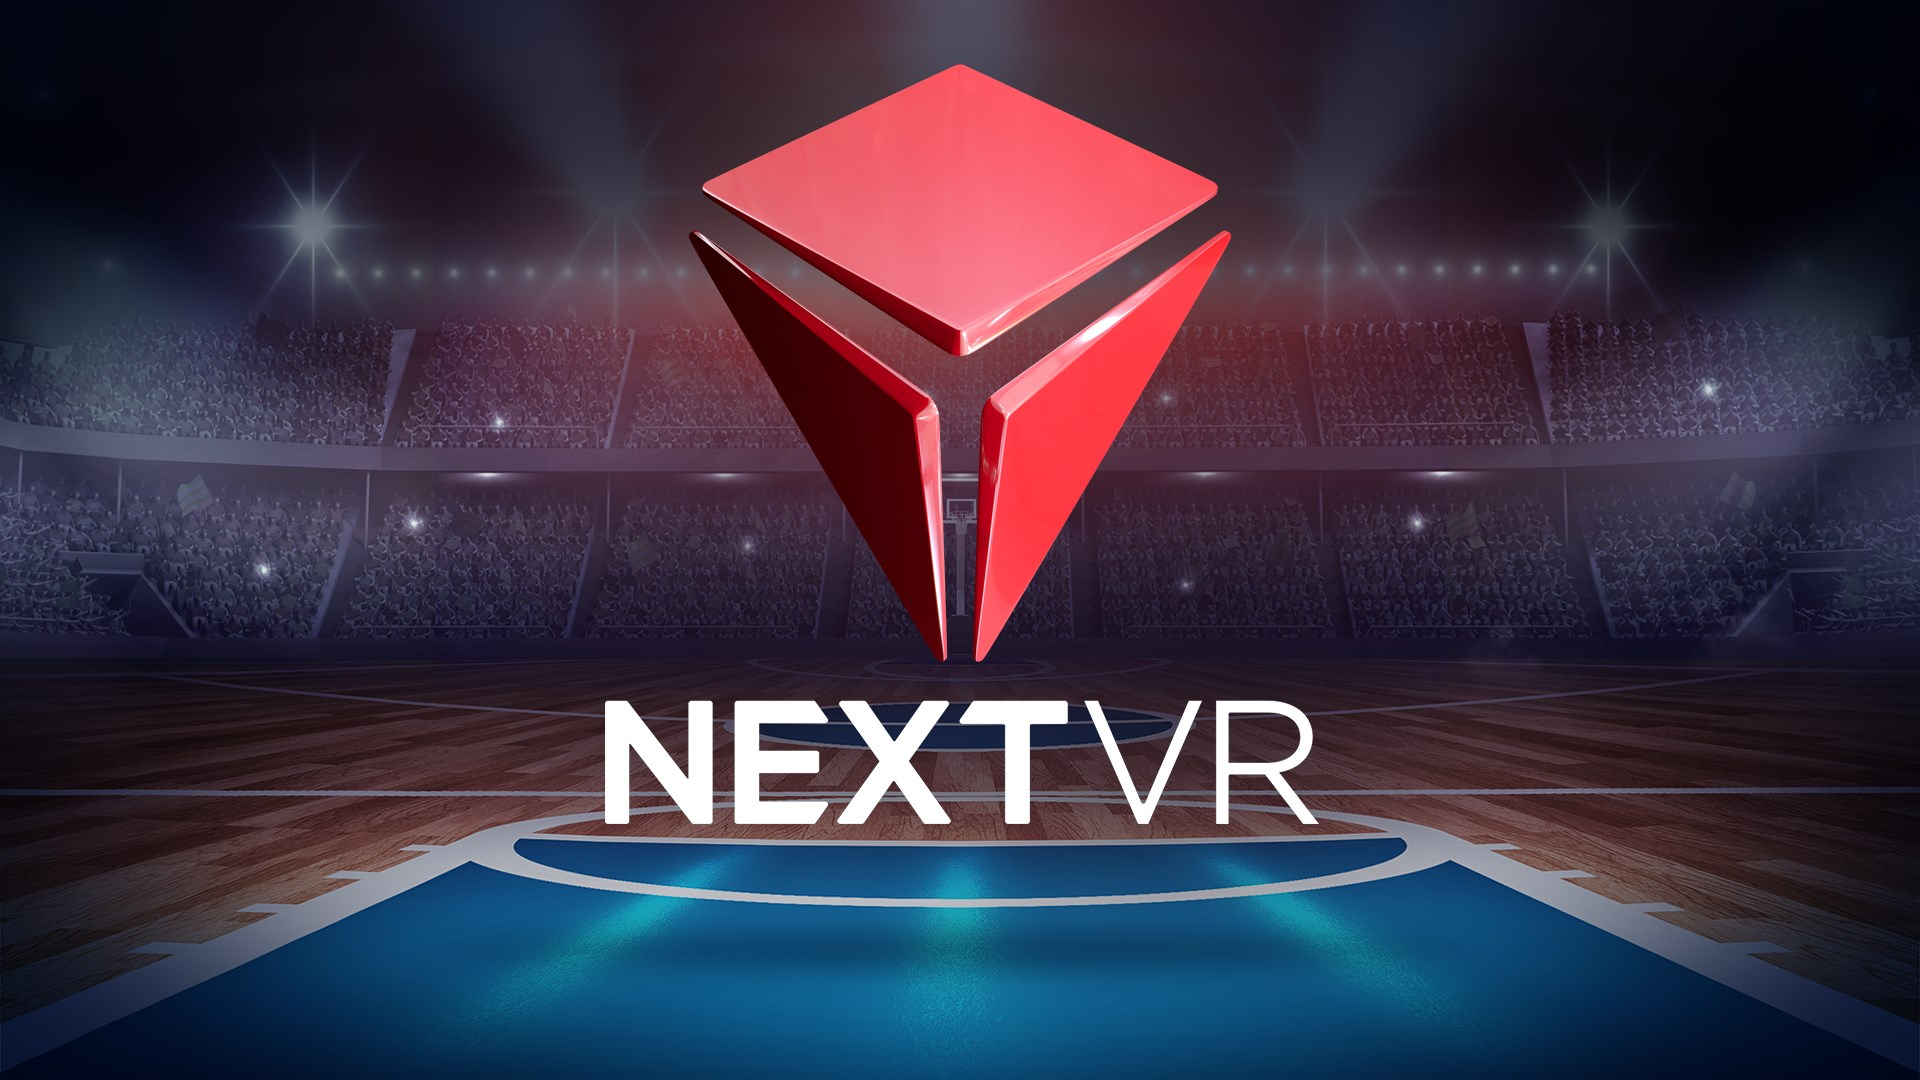 Get NextVR - Live Sports and Entertainment in Virtual Reality